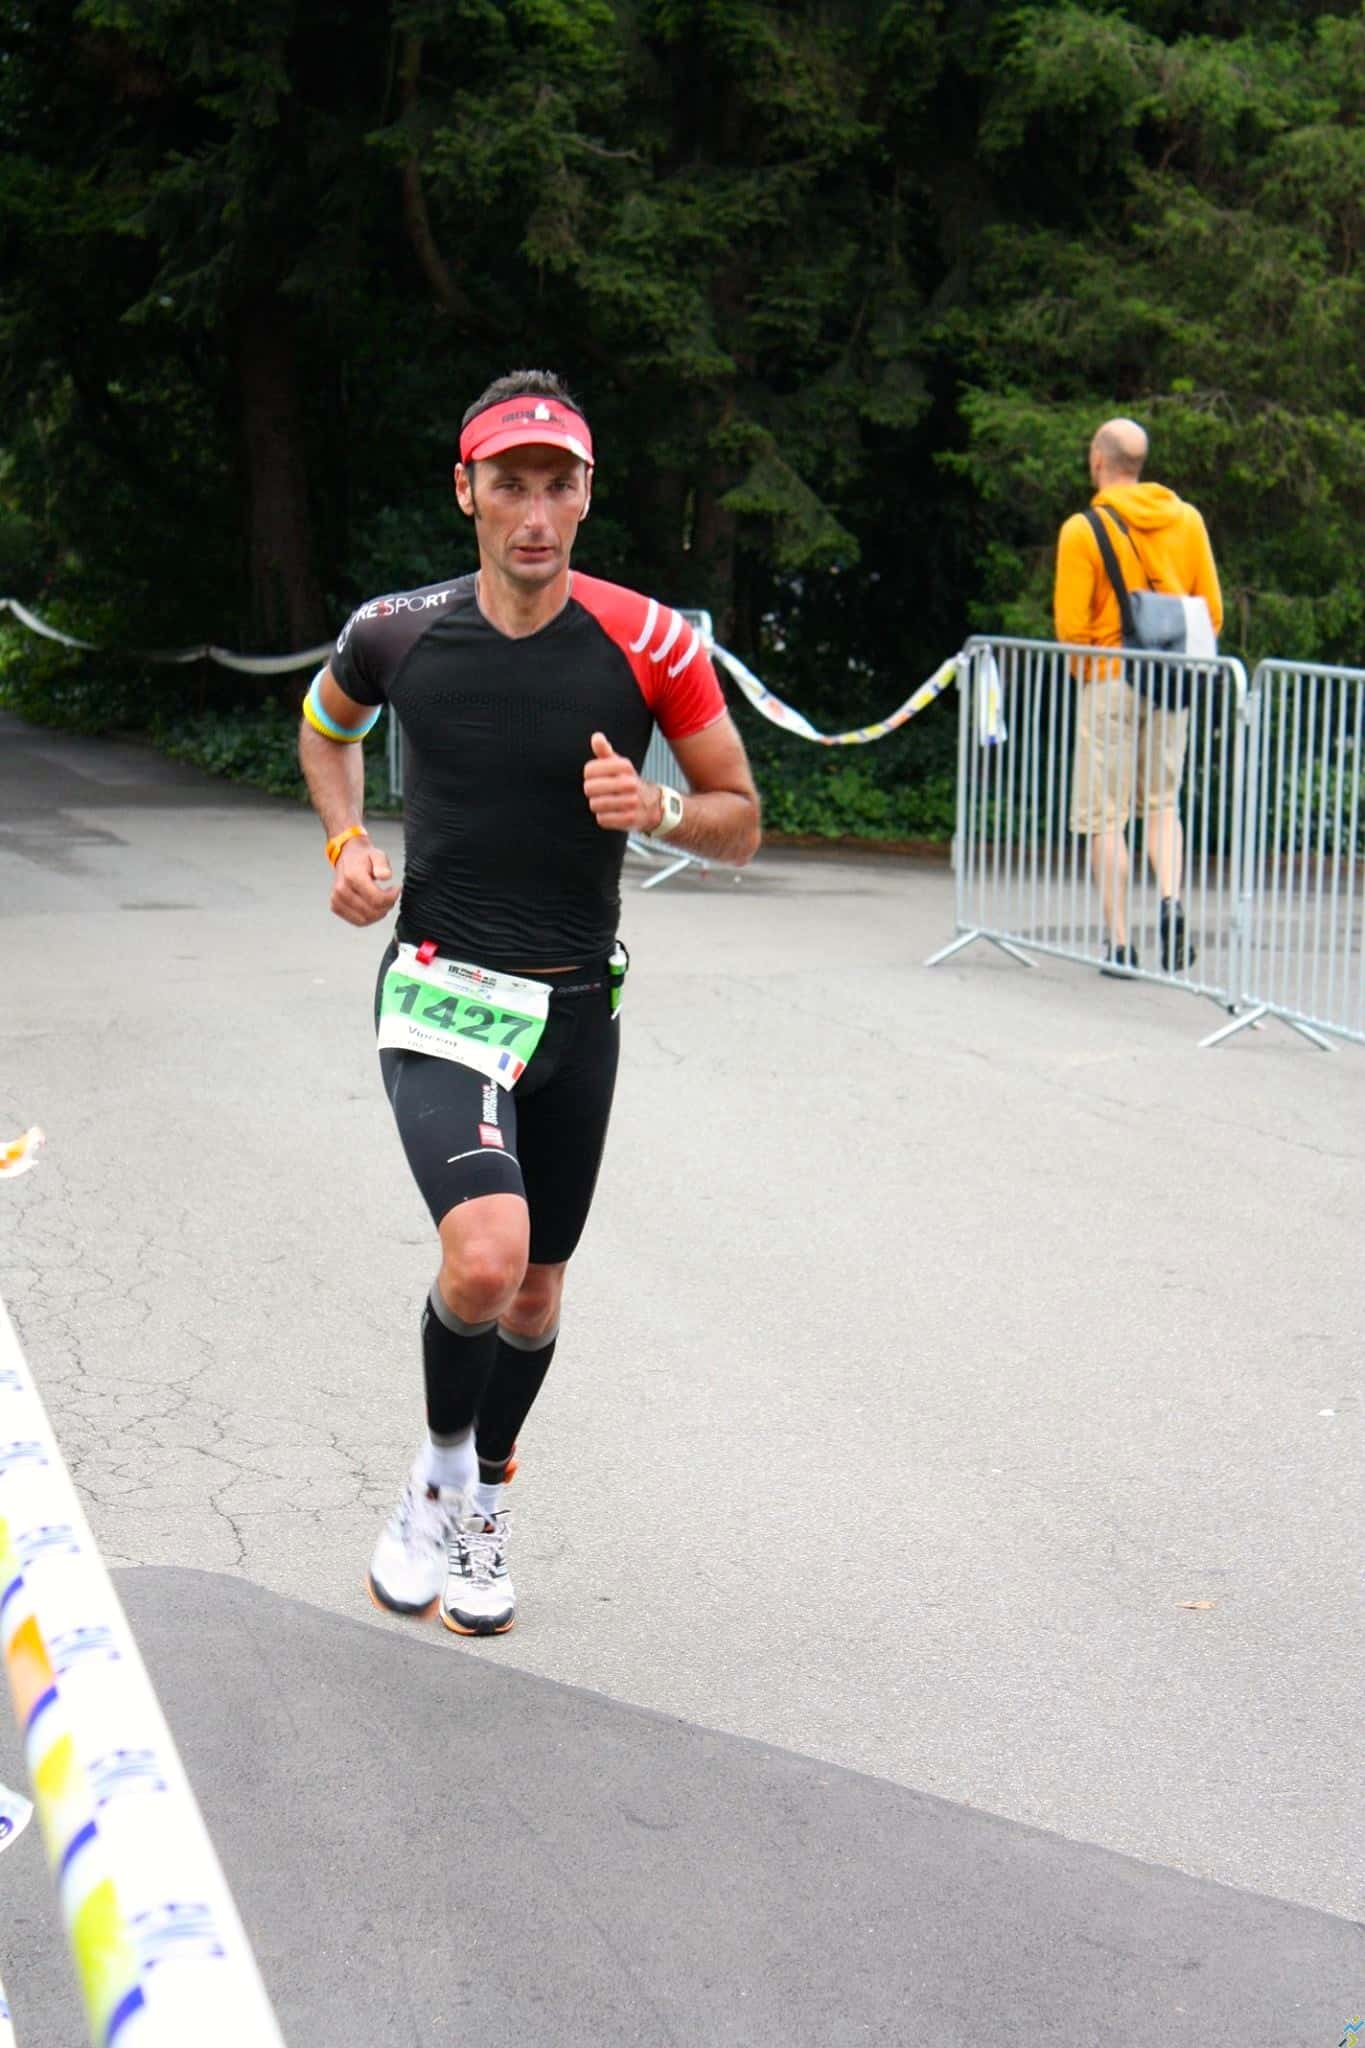 Zuritch Ironman Triathlon 2014